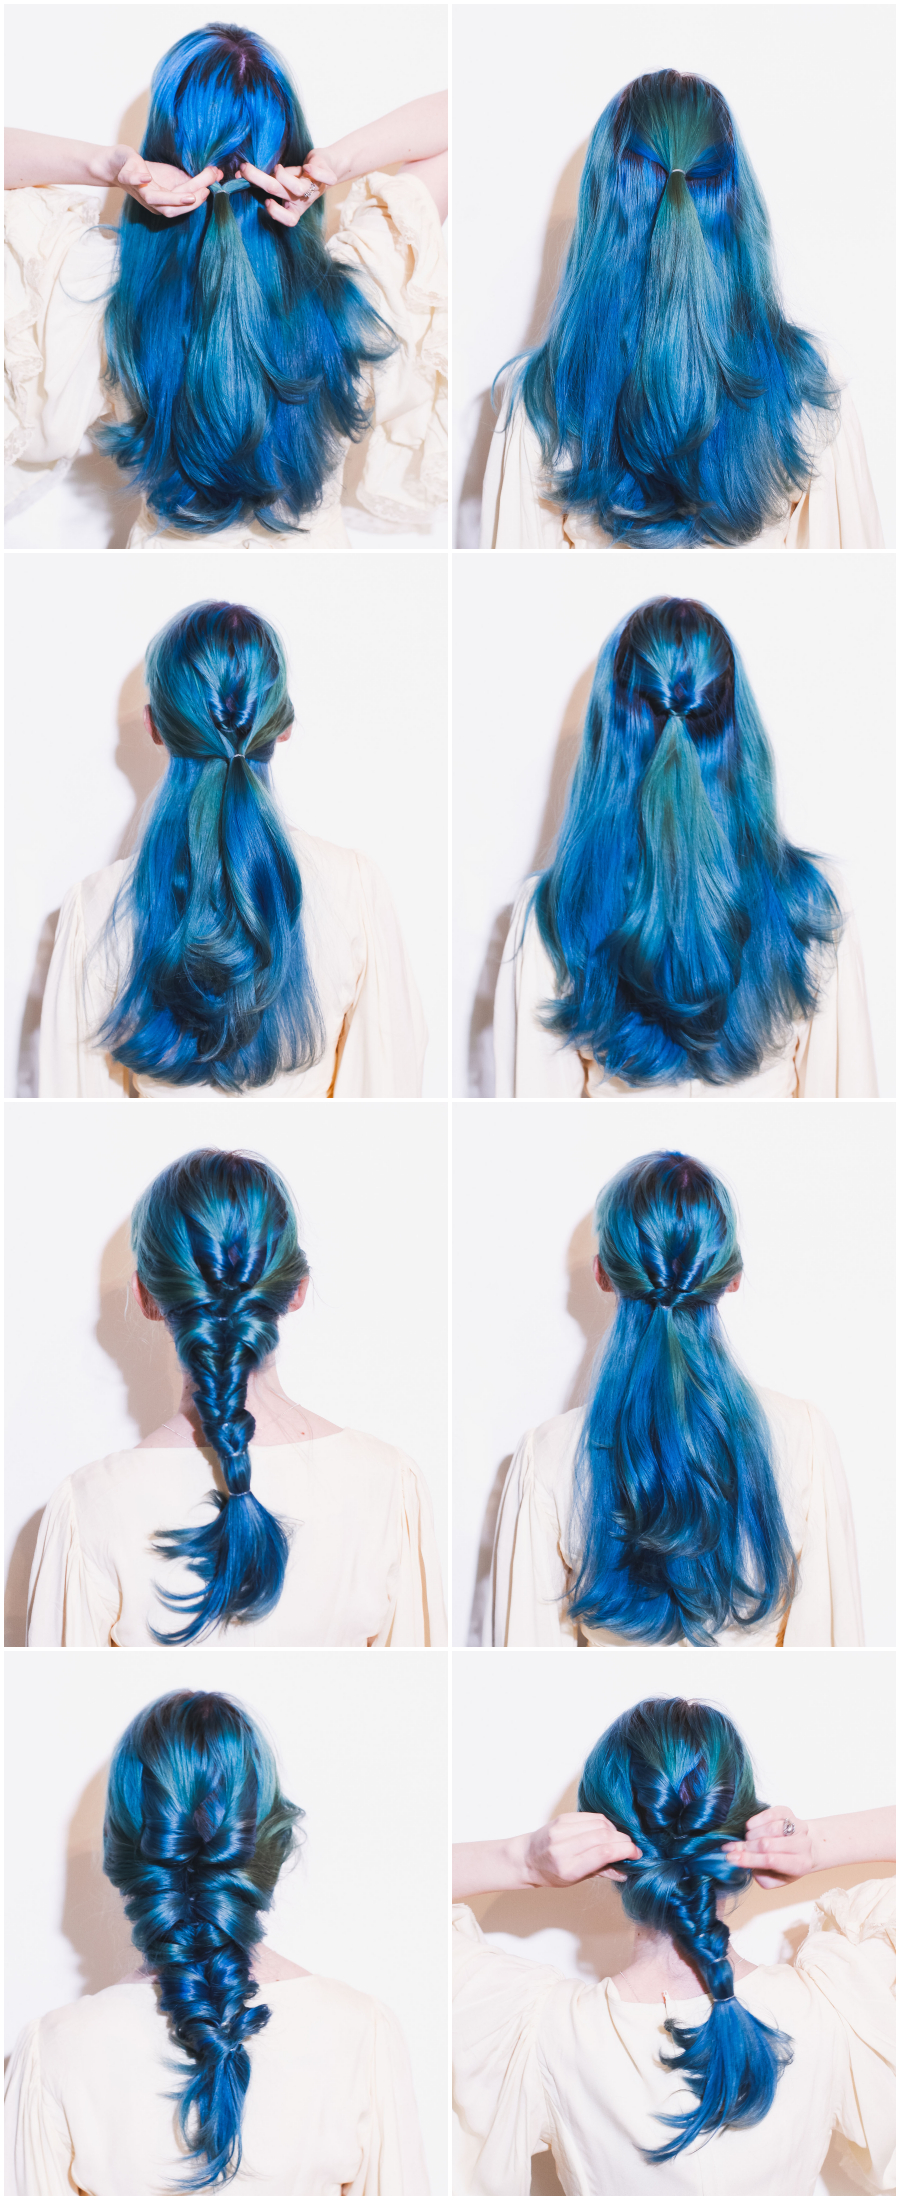 Hair Styles, Mermaid Braid Throughout Most Recent Messy Mermaid Braid Hairstyles (View 5 of 20)